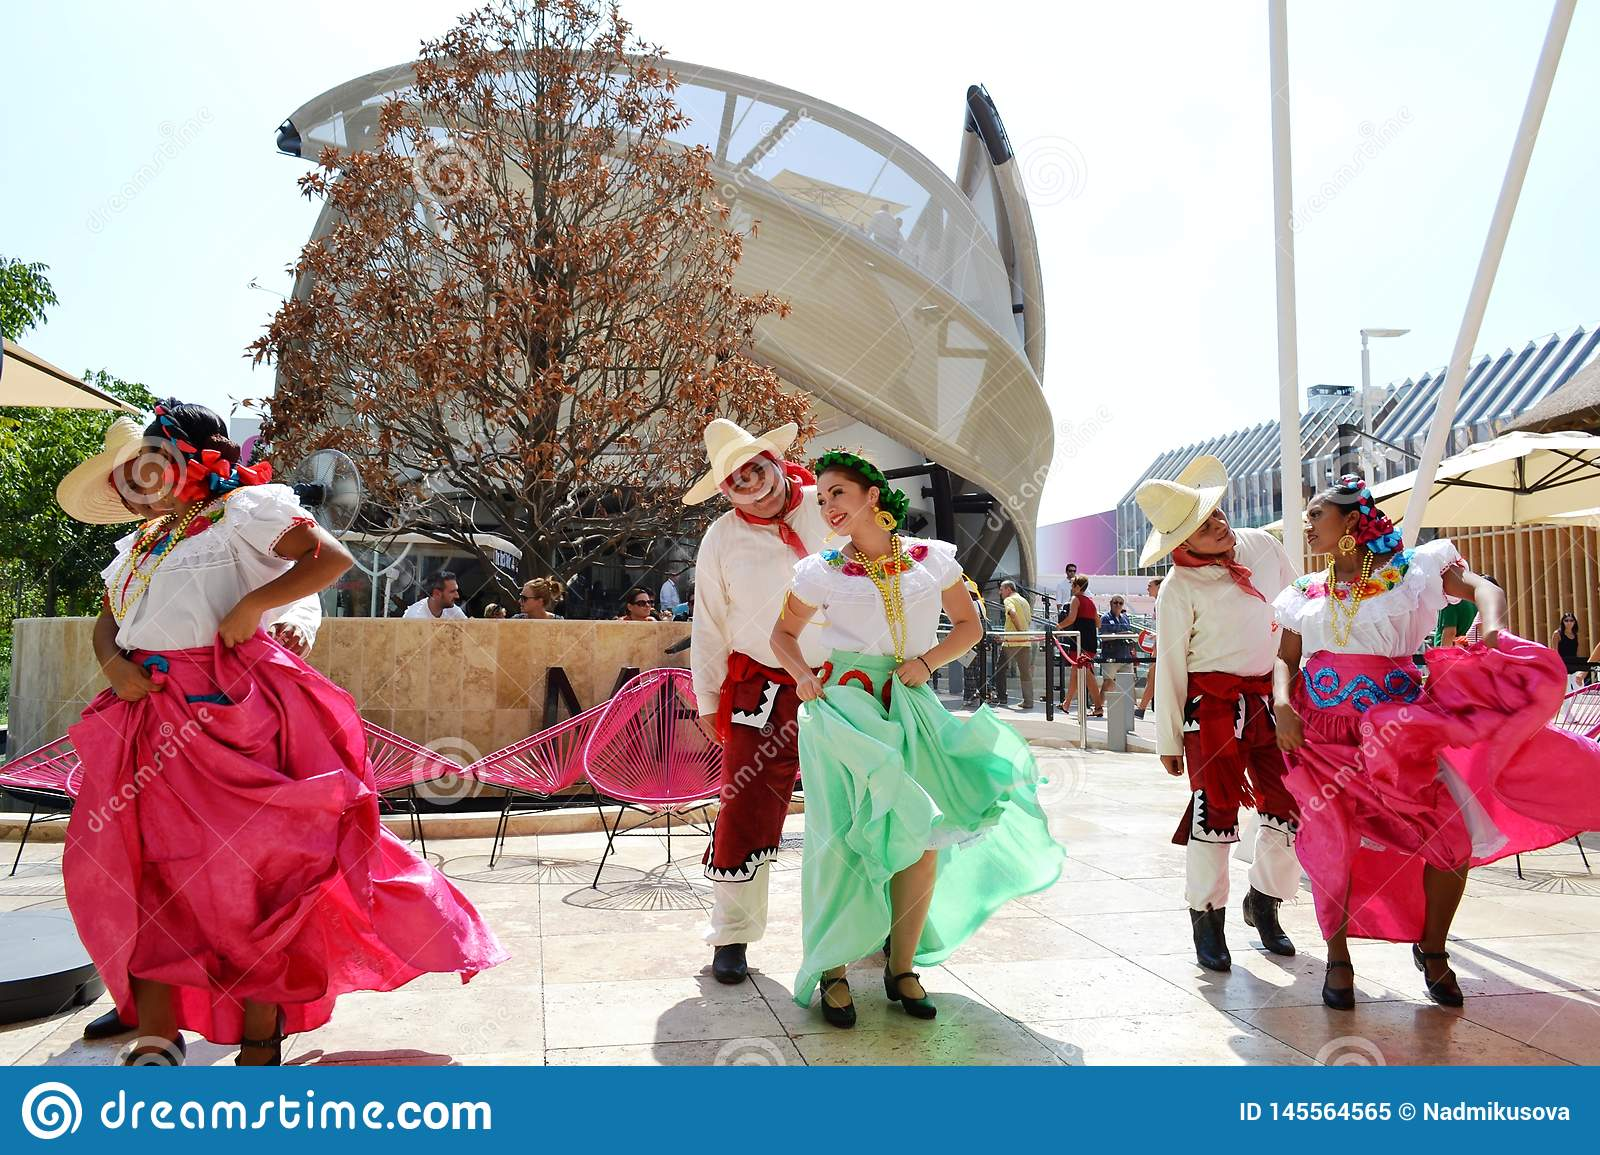 Mexican folklore dancers are dancing passionately in front of the Mexico pavilion at EXPO Milano 2015.